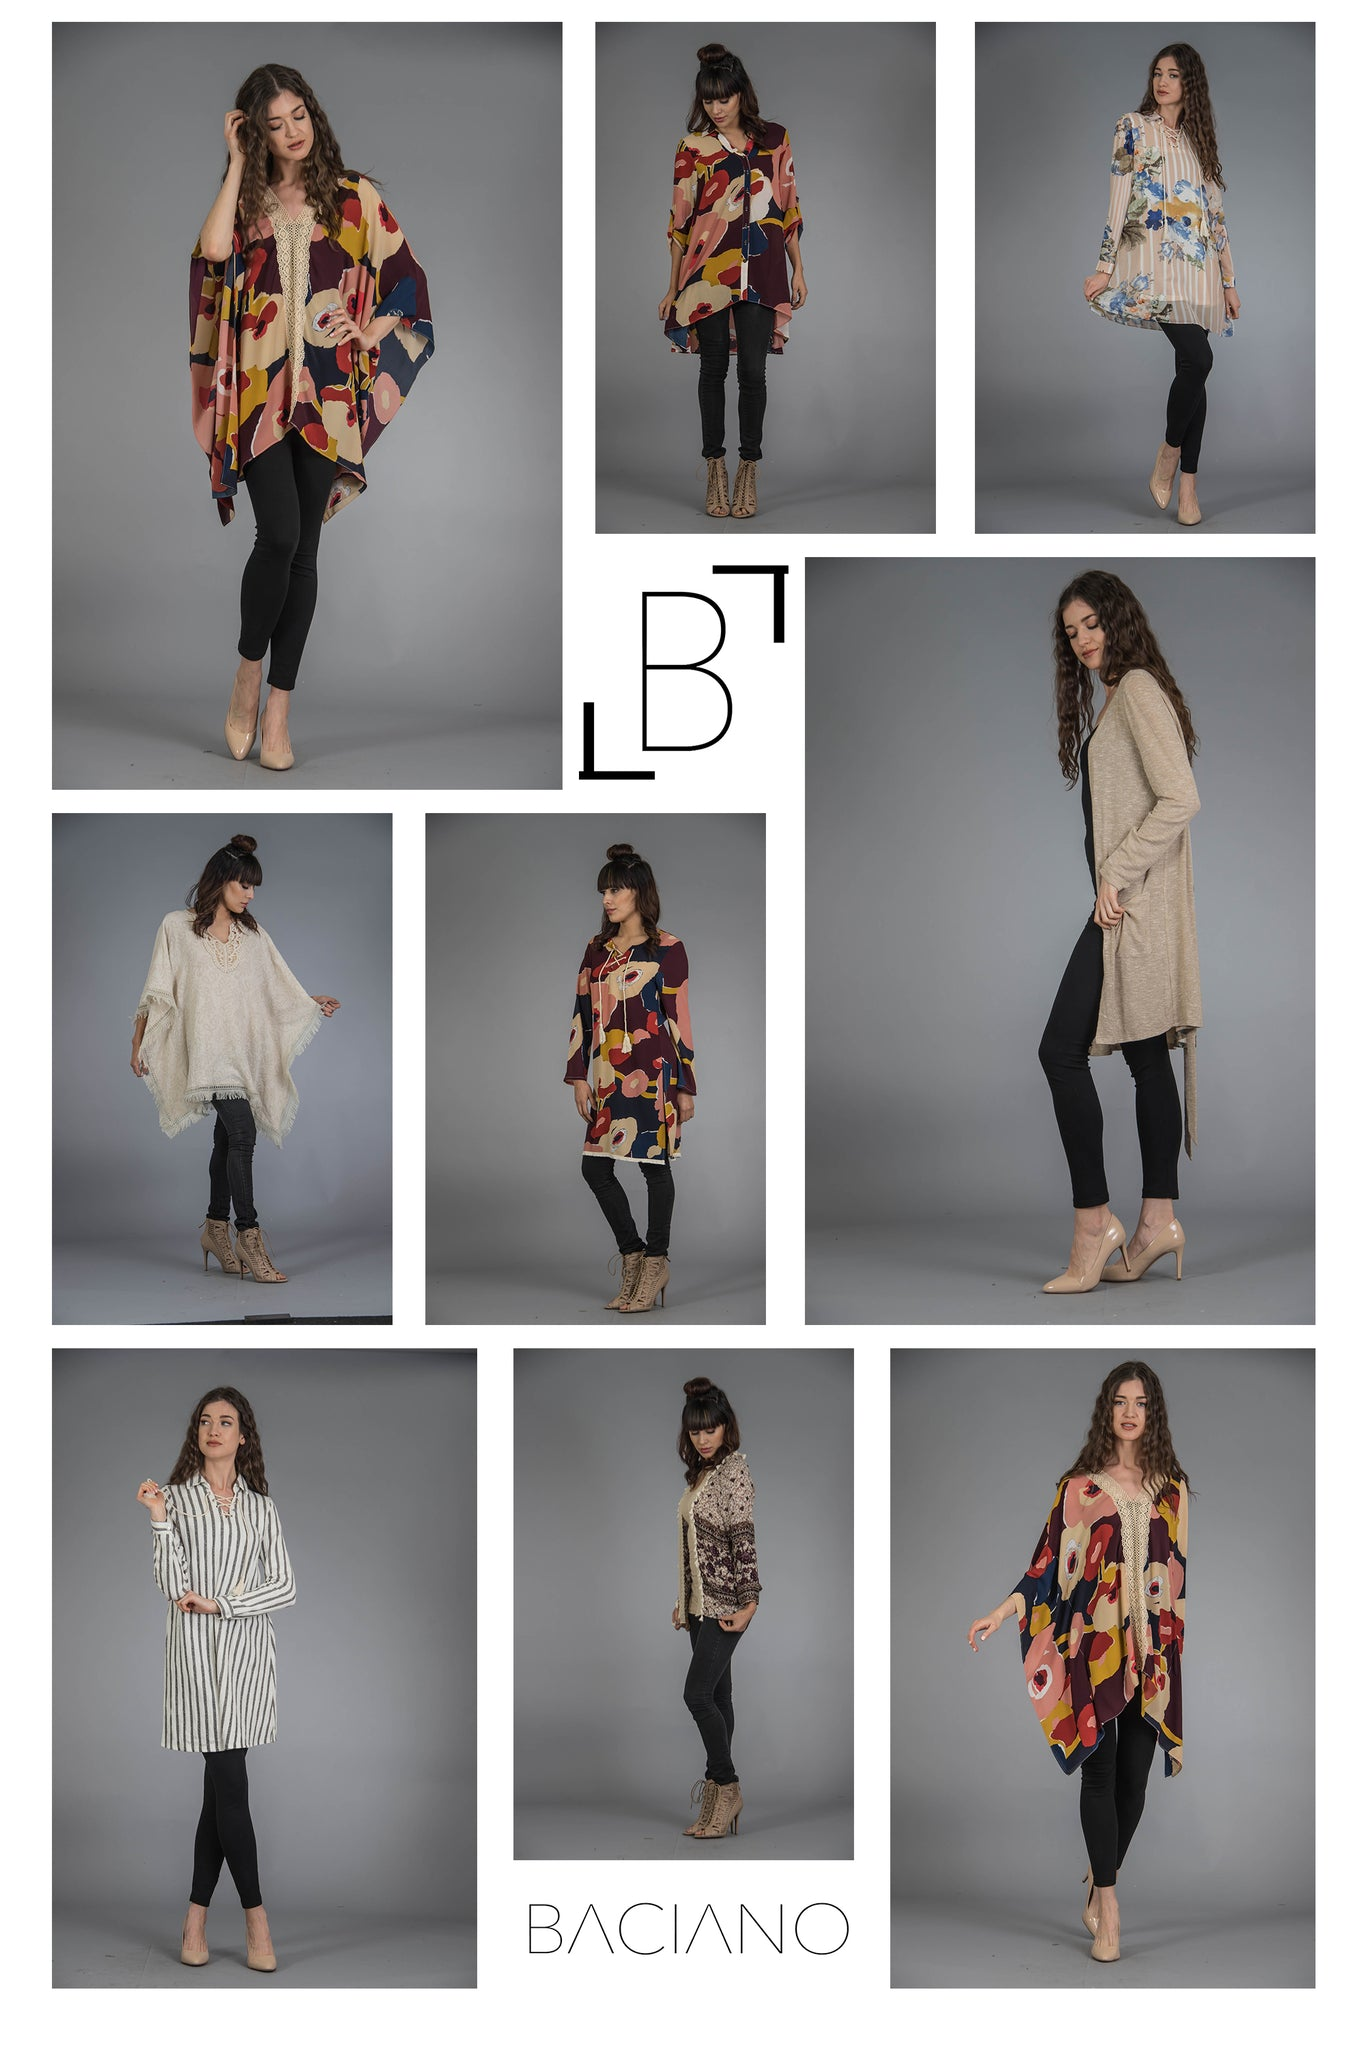 Baciano spring collection. where can i find the best outfit for spring? spring style lookbook.